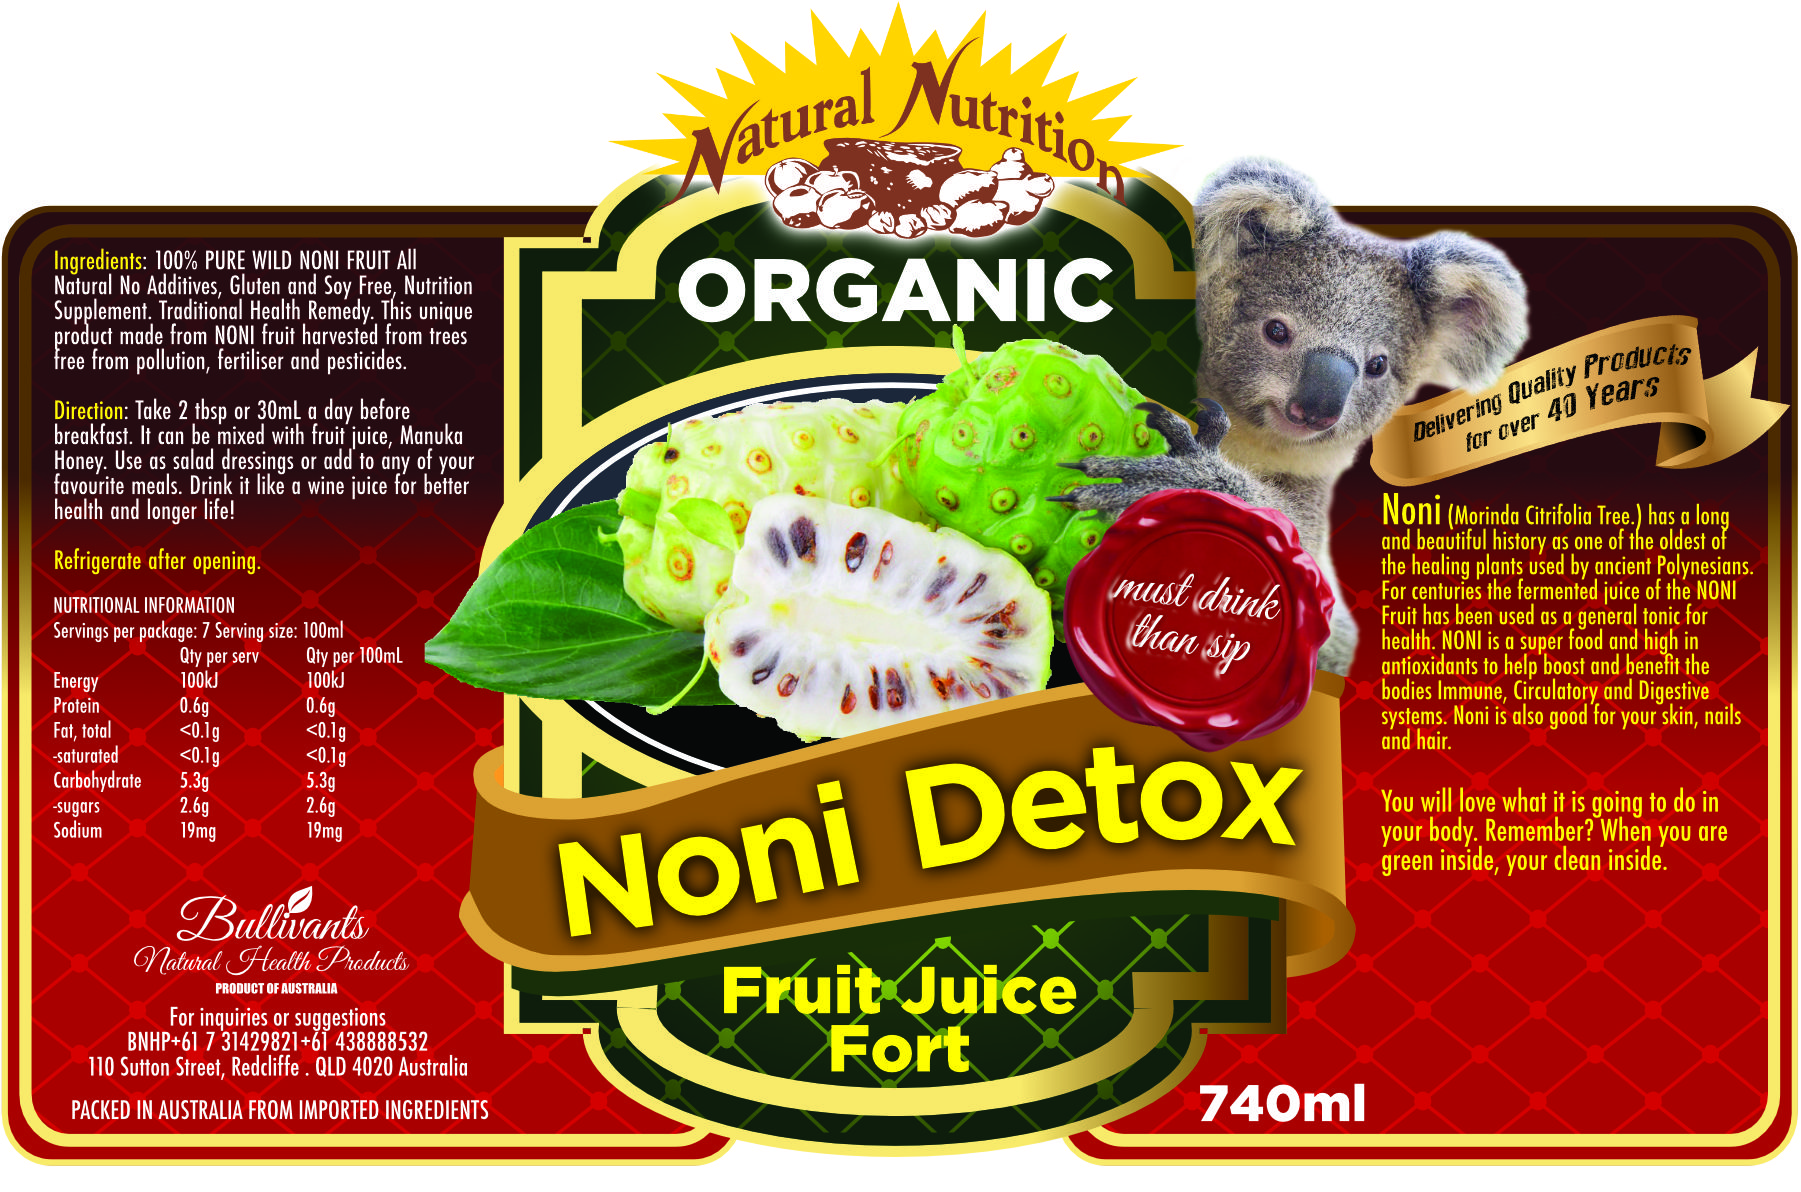 Noni Label Rev02e.jpg